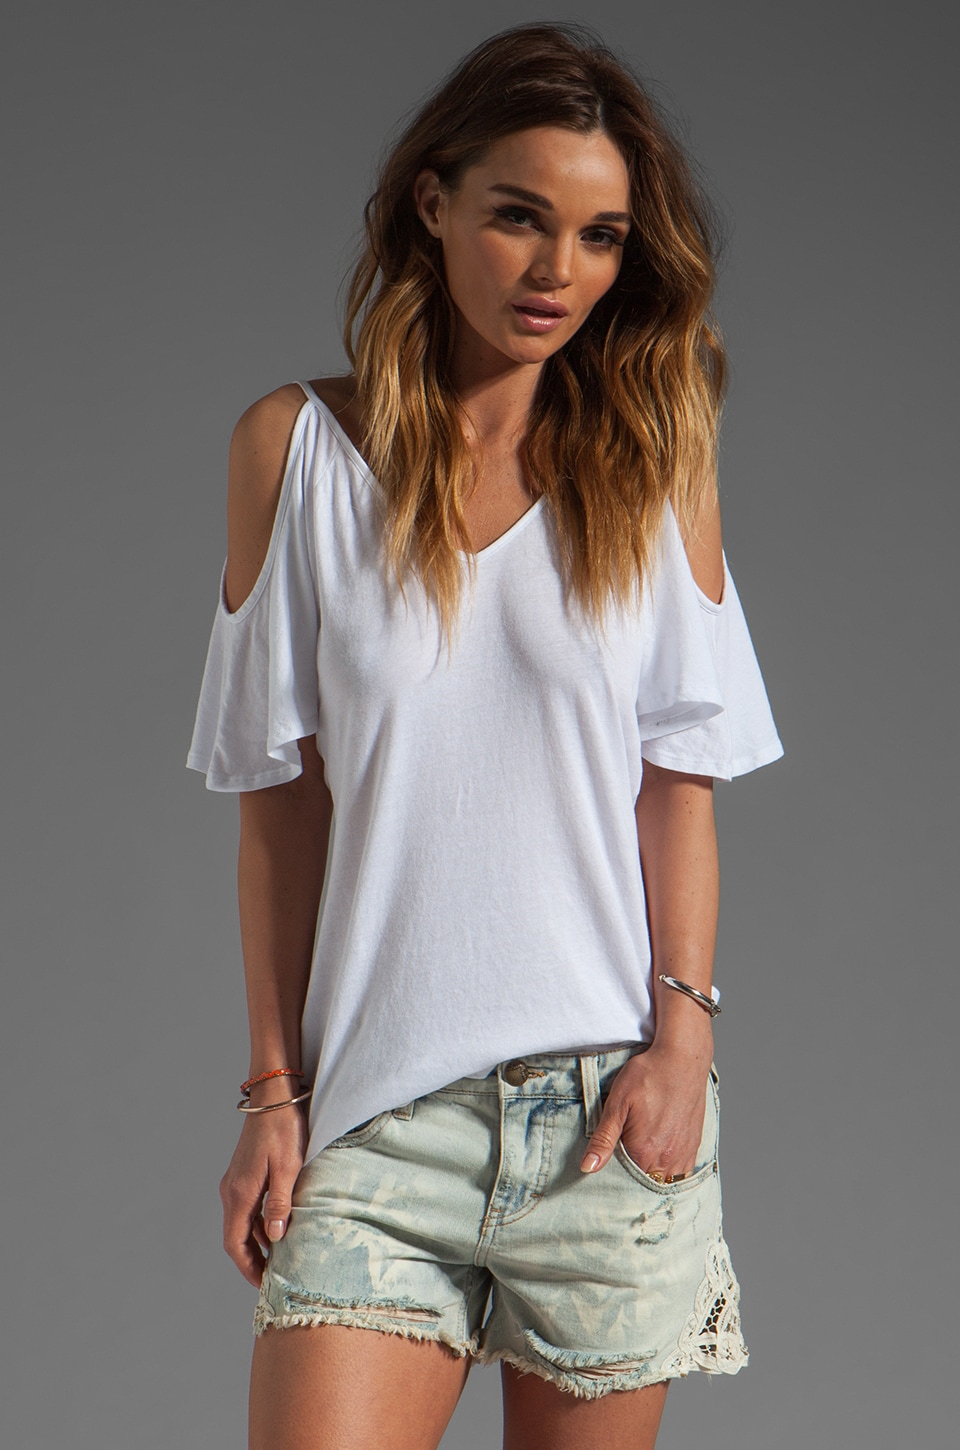 Bobi Lightweight Jersey Cold Shoulder Top in White